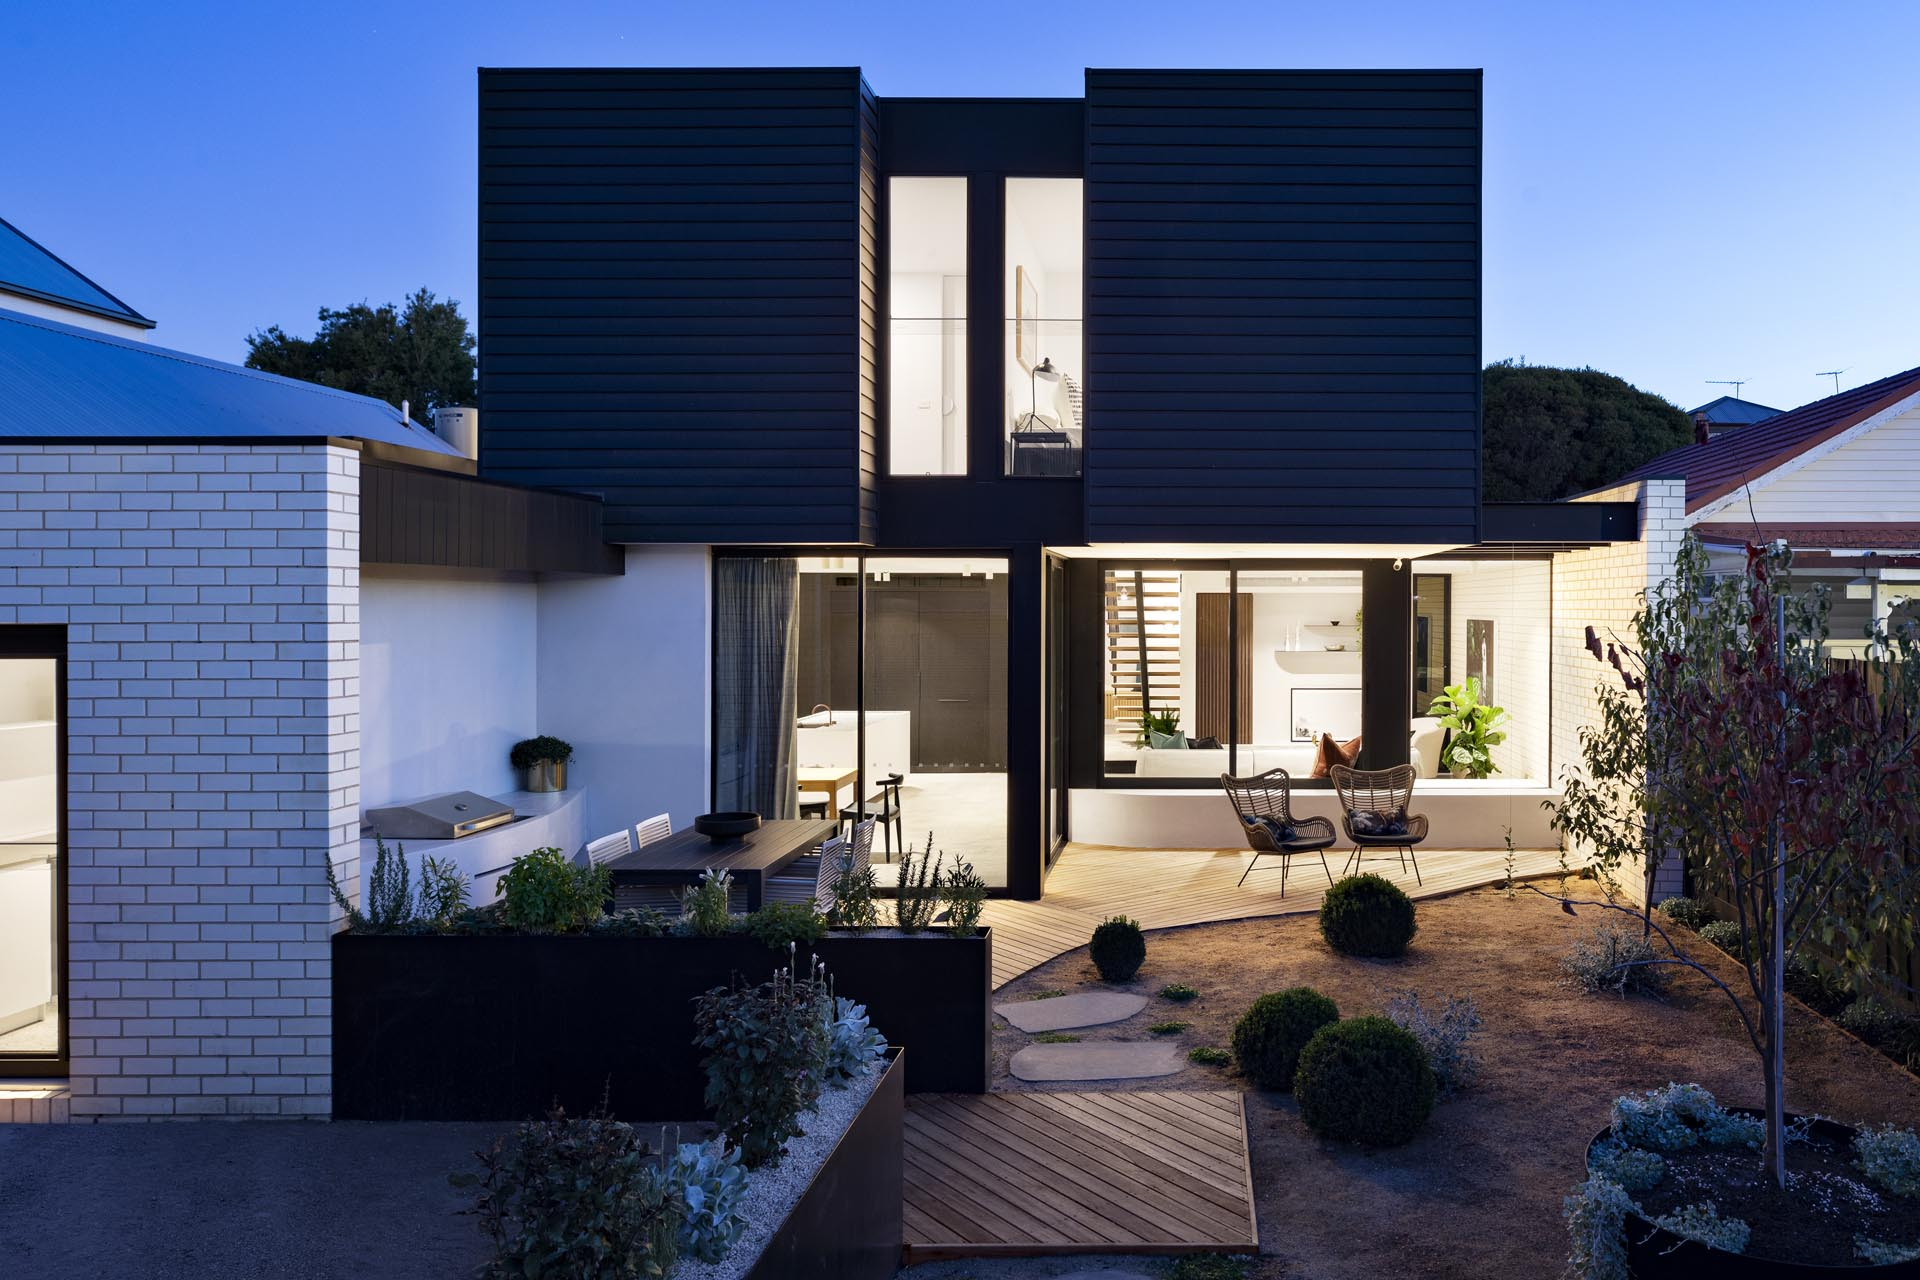 A modern house extension that has a black facade, a landscaped yard with a bbq, outdoor dining area, and patio.